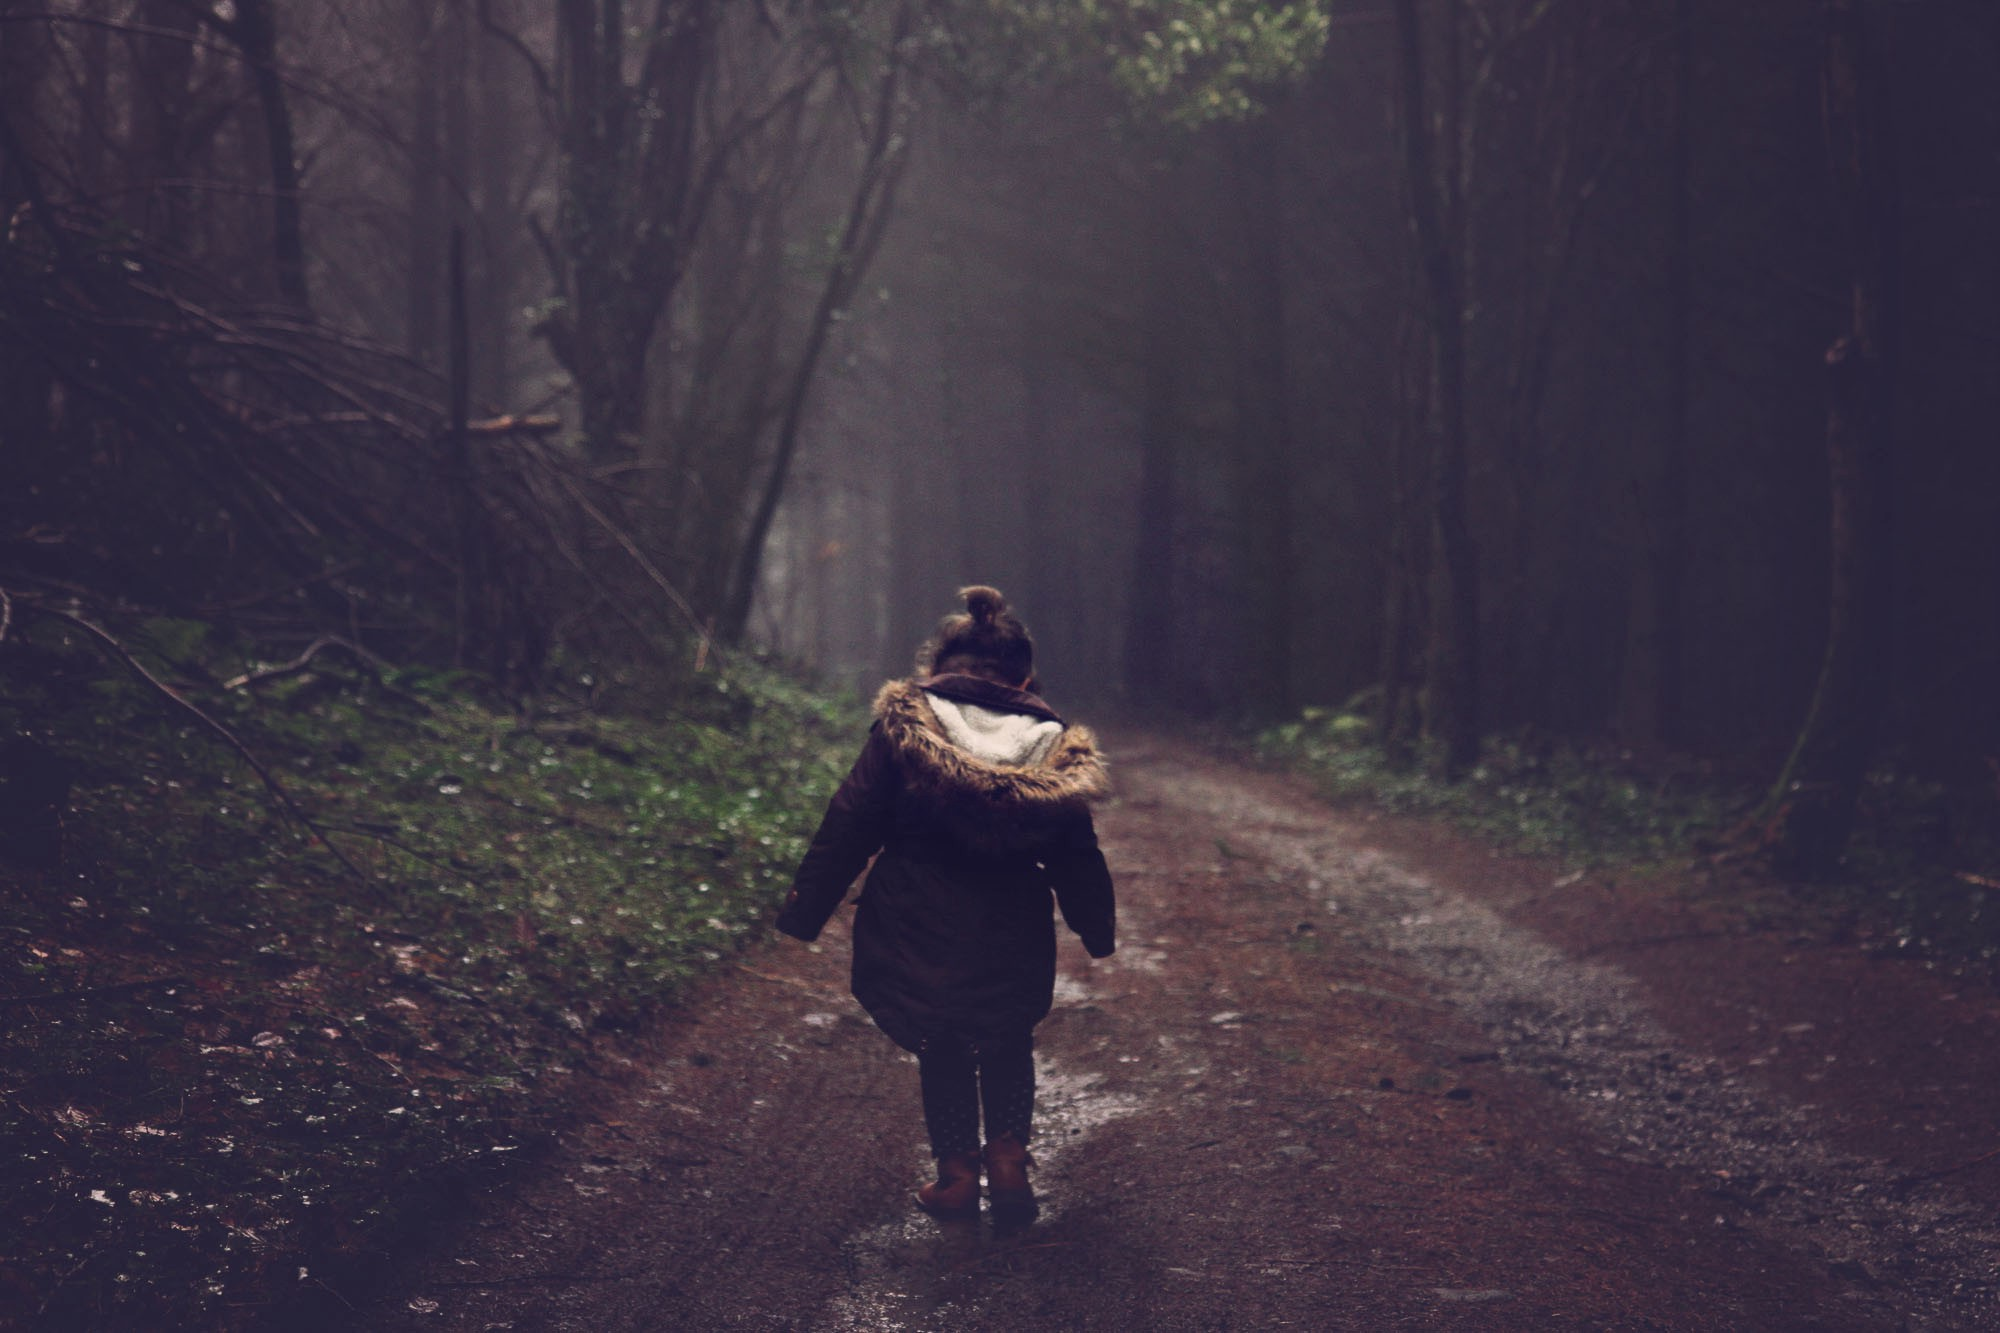 A little girl walking alone in a forest.